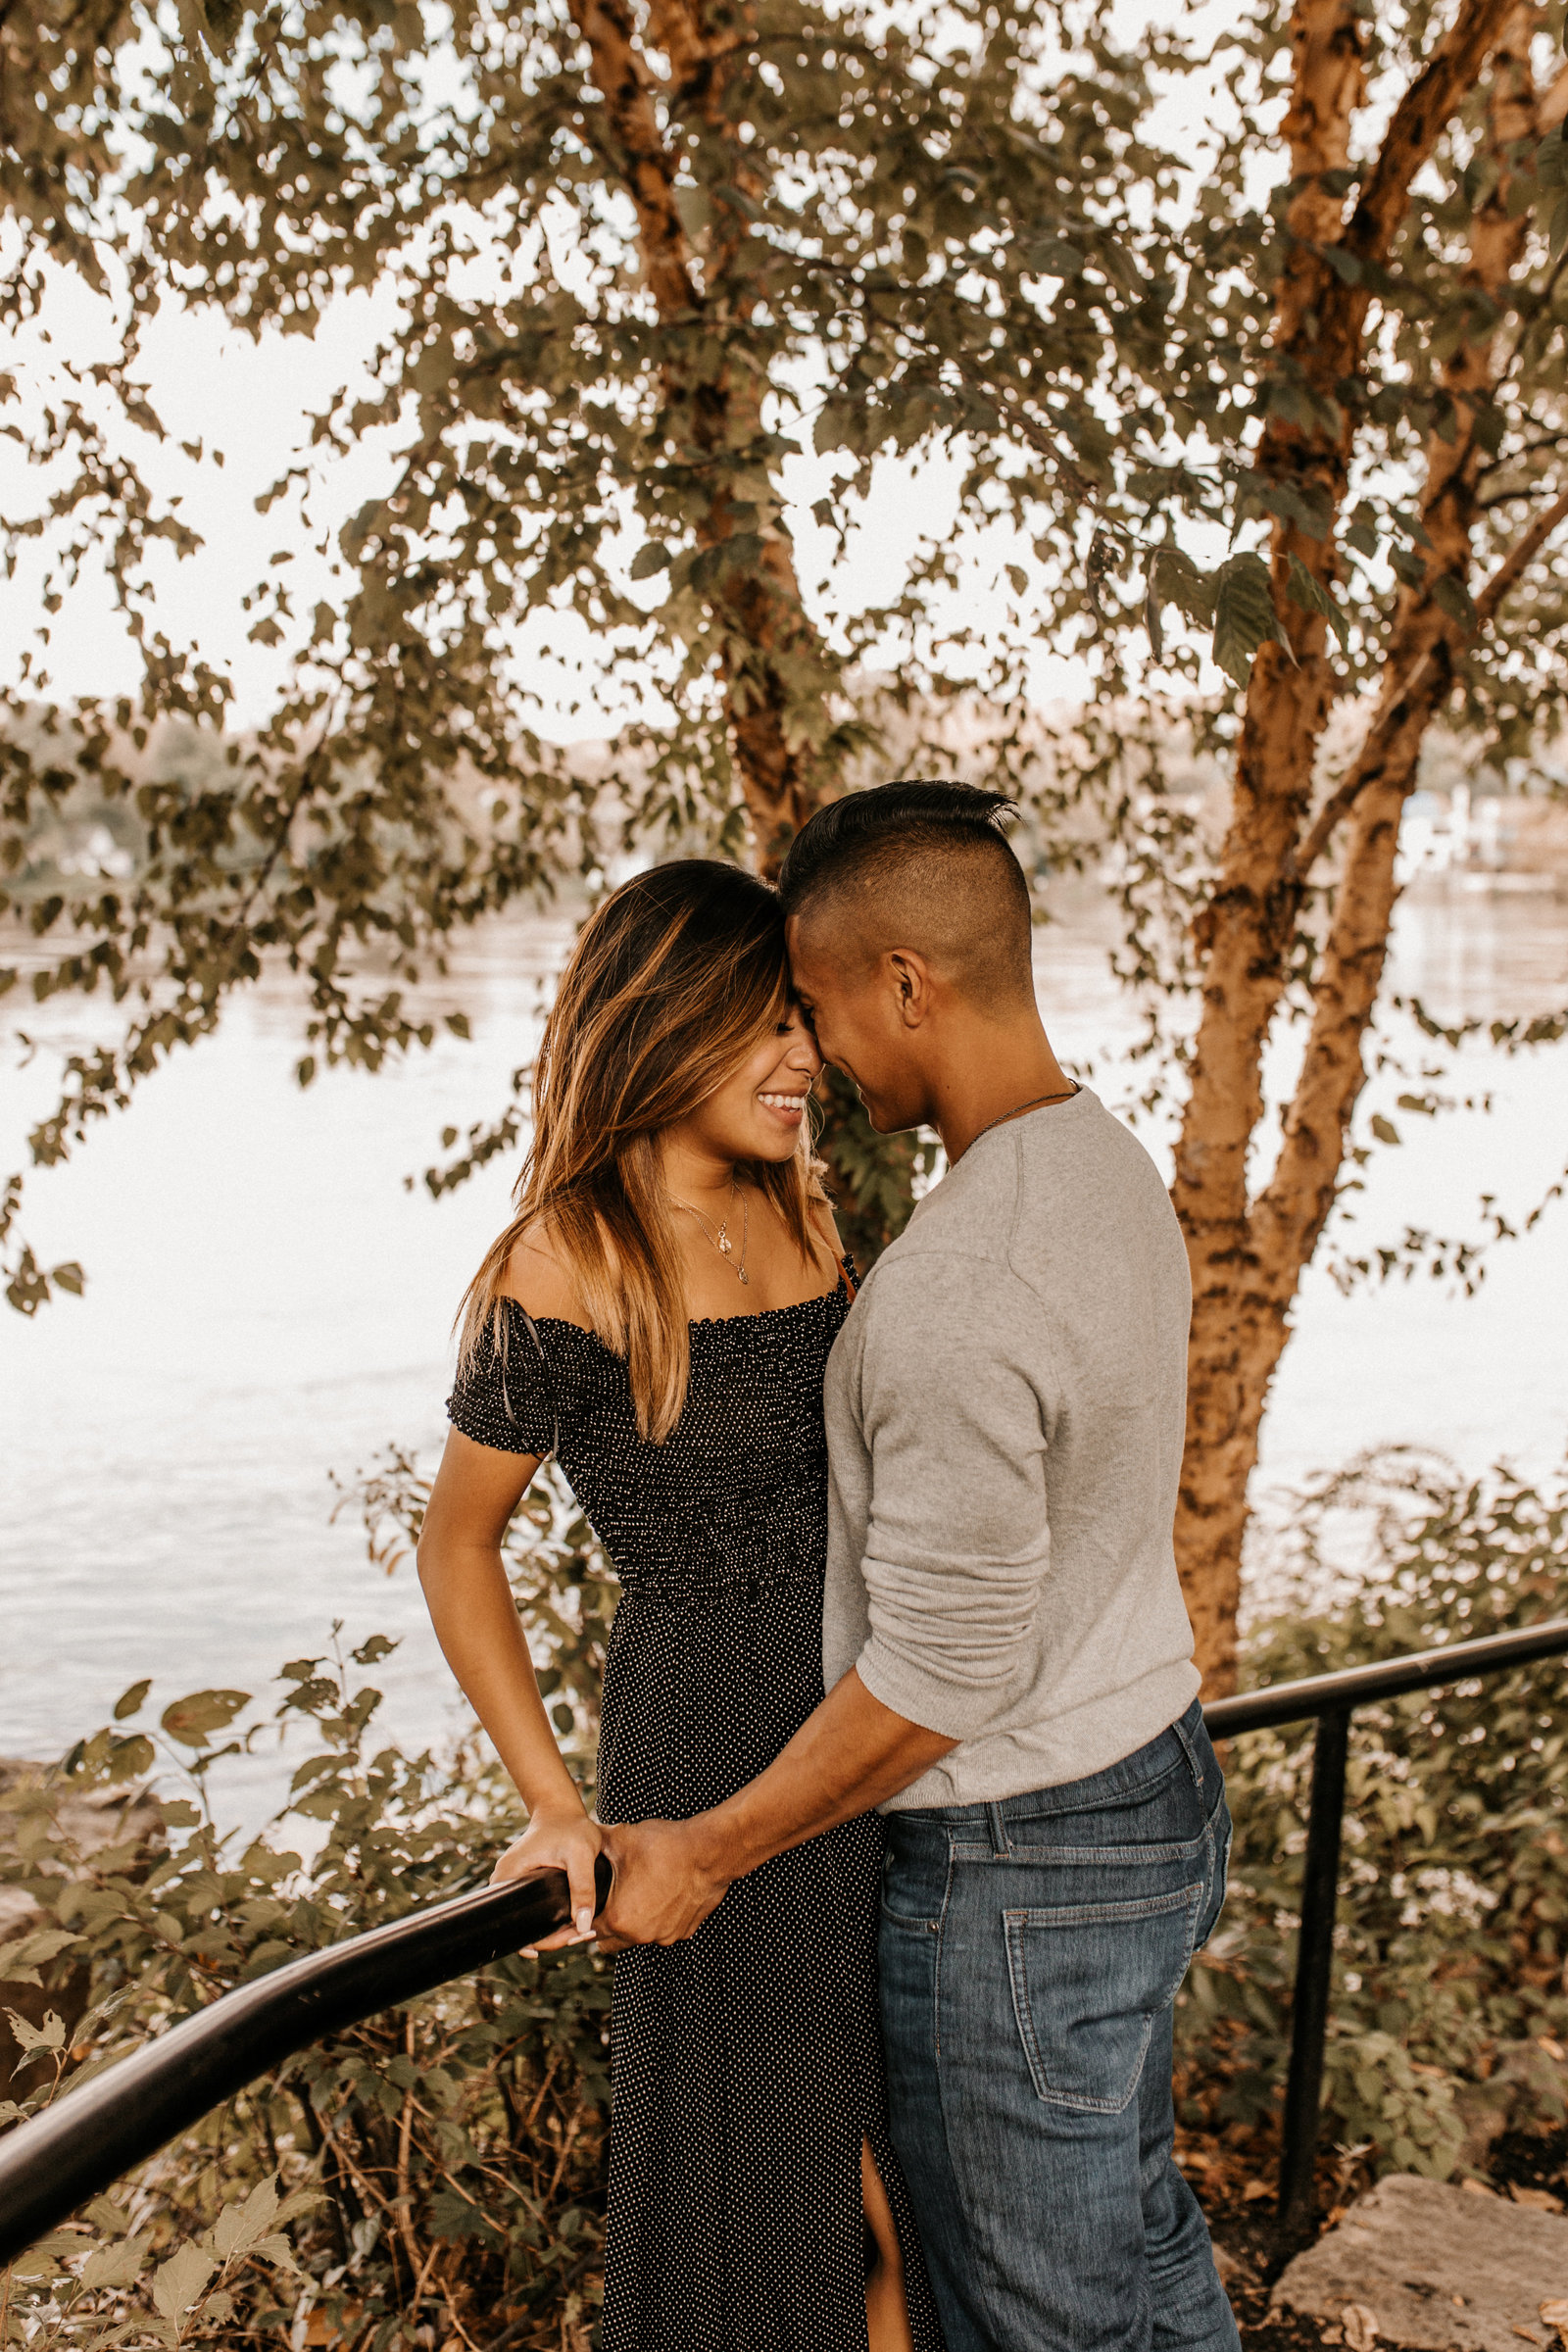 Tammy_Noel_Couples_Session_Sneak_Peeks_9.29.18-36